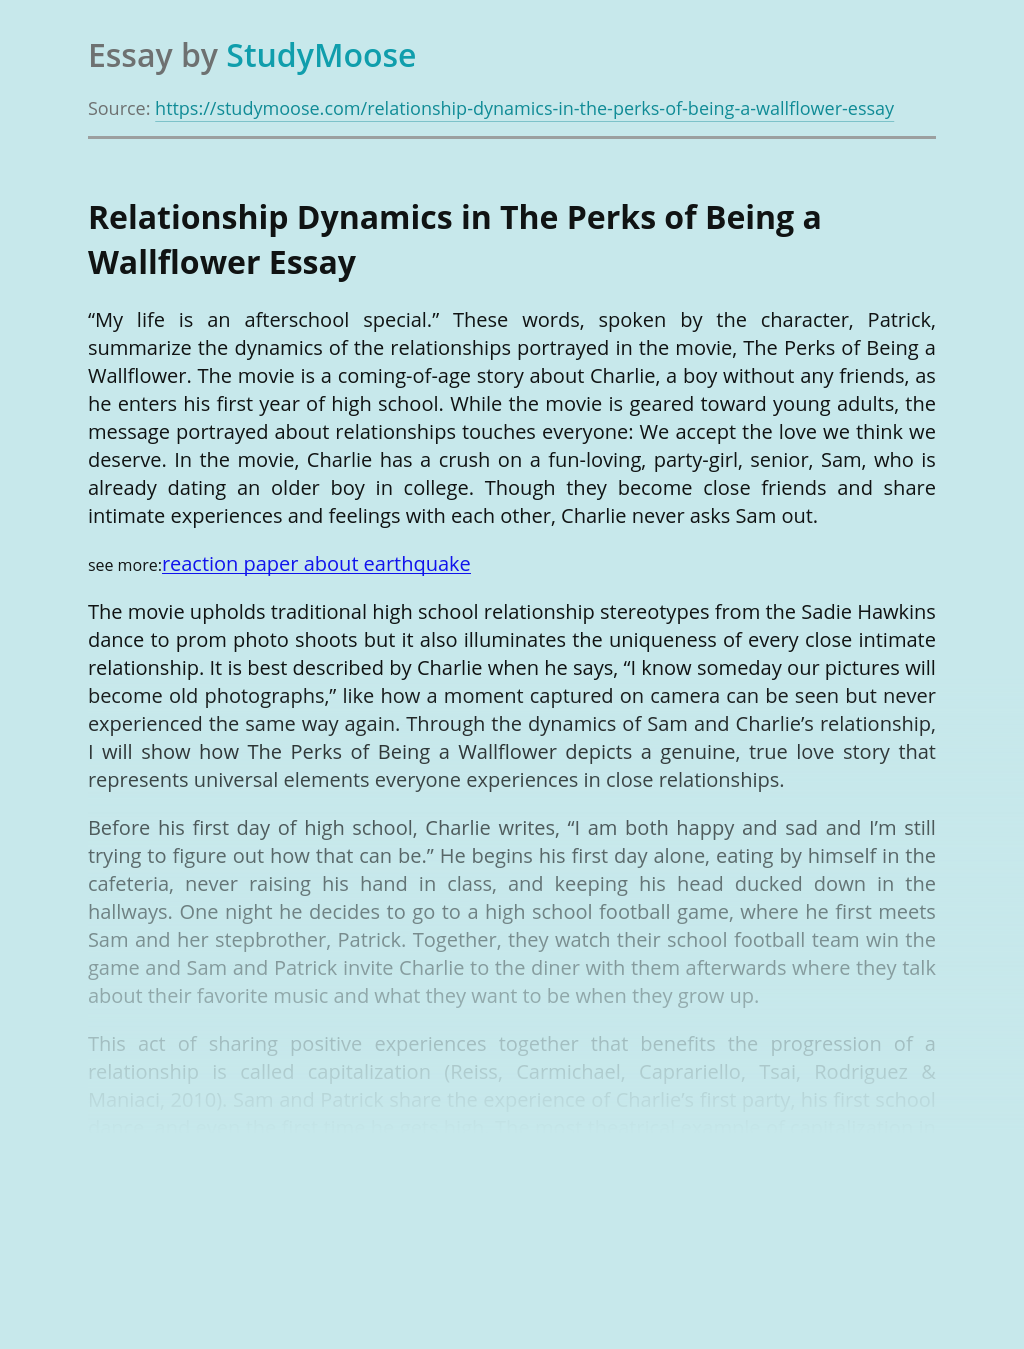 Relationship Dynamics in The Perks of Being a Wallflower